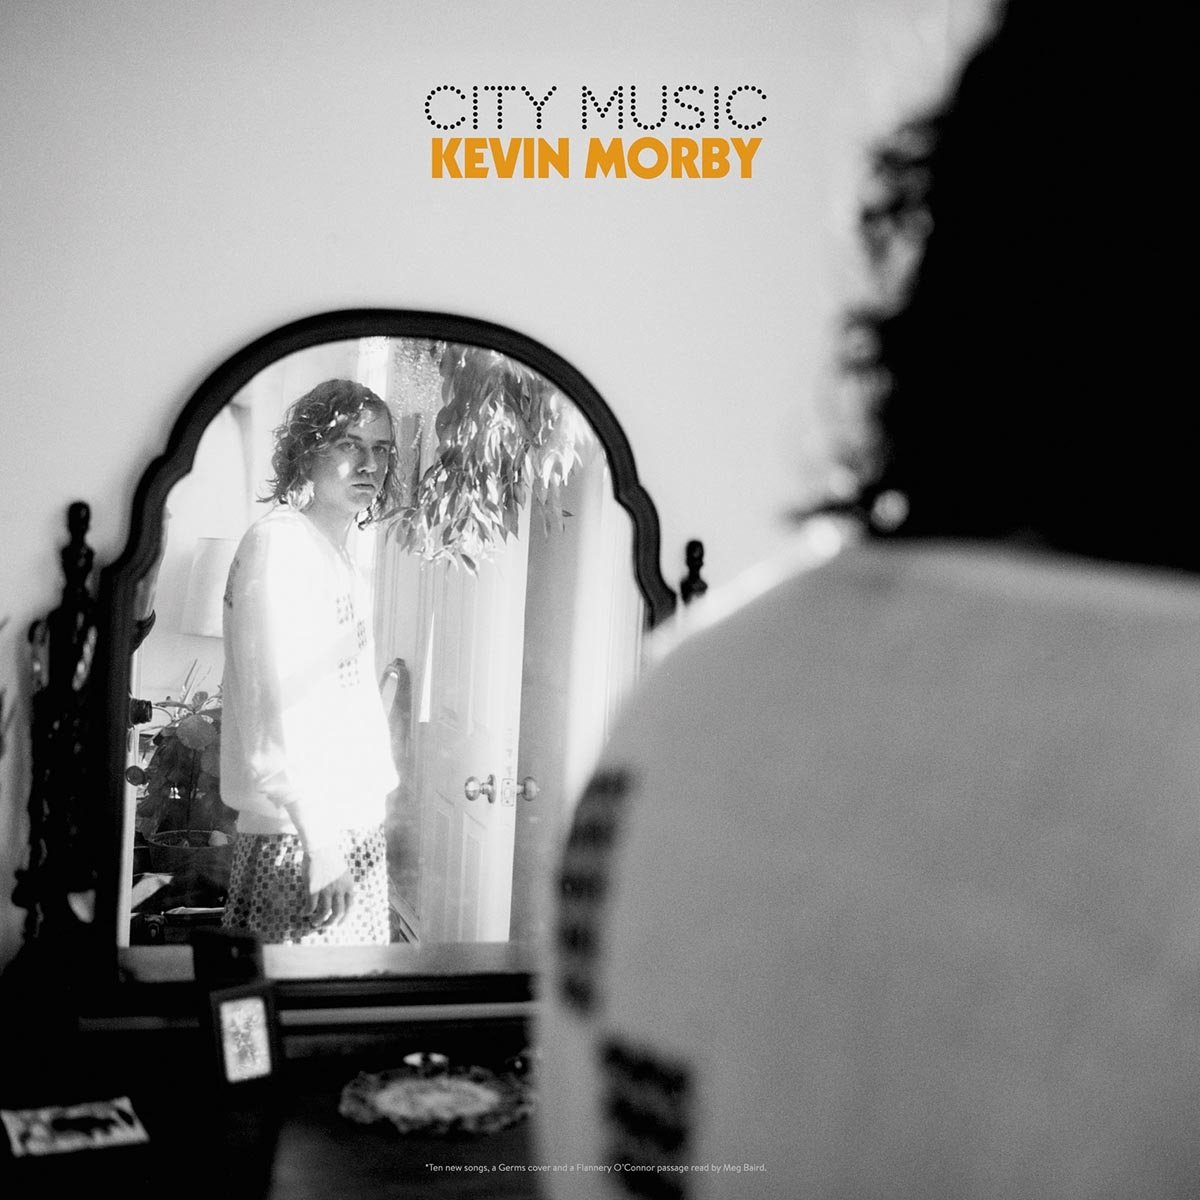 Kevin Morby - City Music (LP Vinyl)